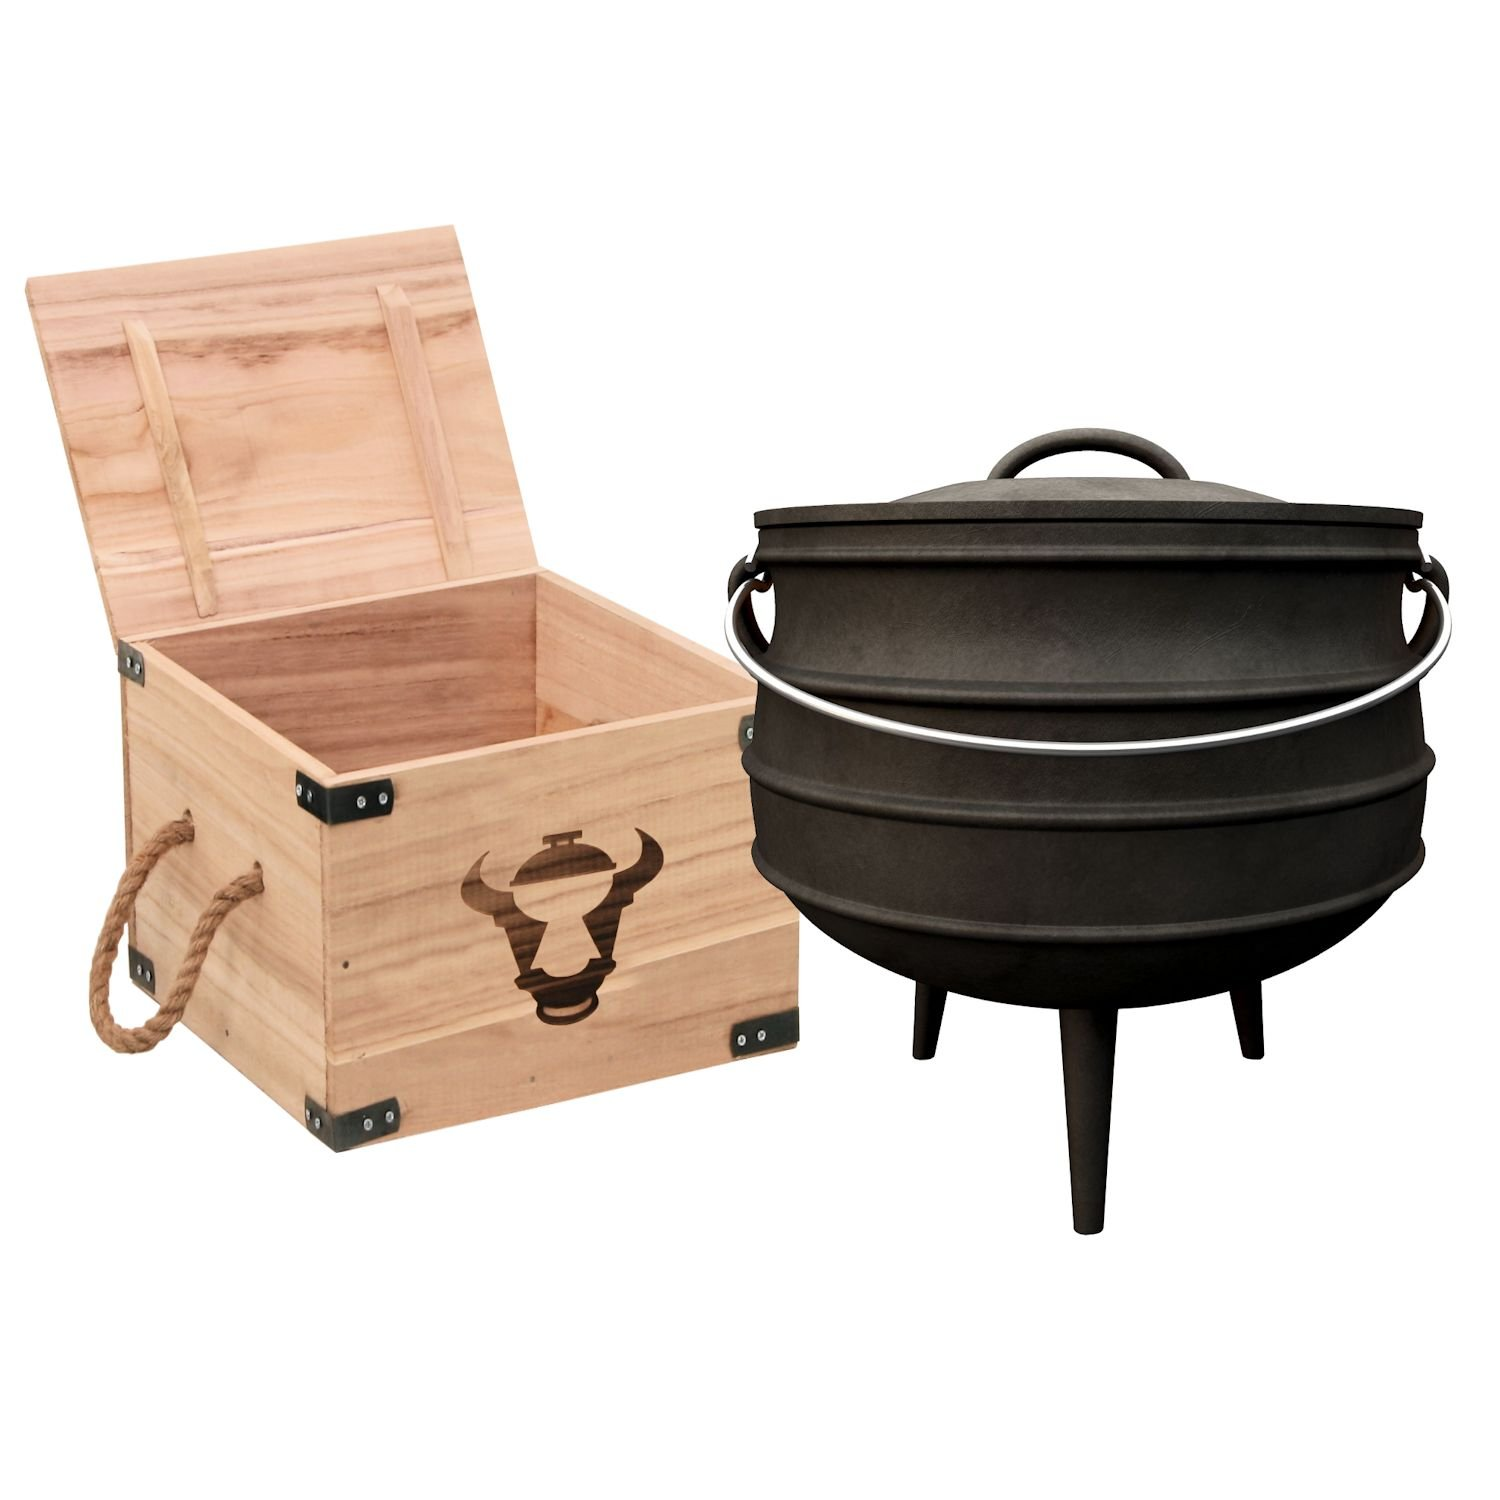 BBQ-TORO Potjie #3 in Wood Box, Saucepan/Cooking Pot, Cast Iron, Approx.8 Litres, South African Dutch Oven cs-trading